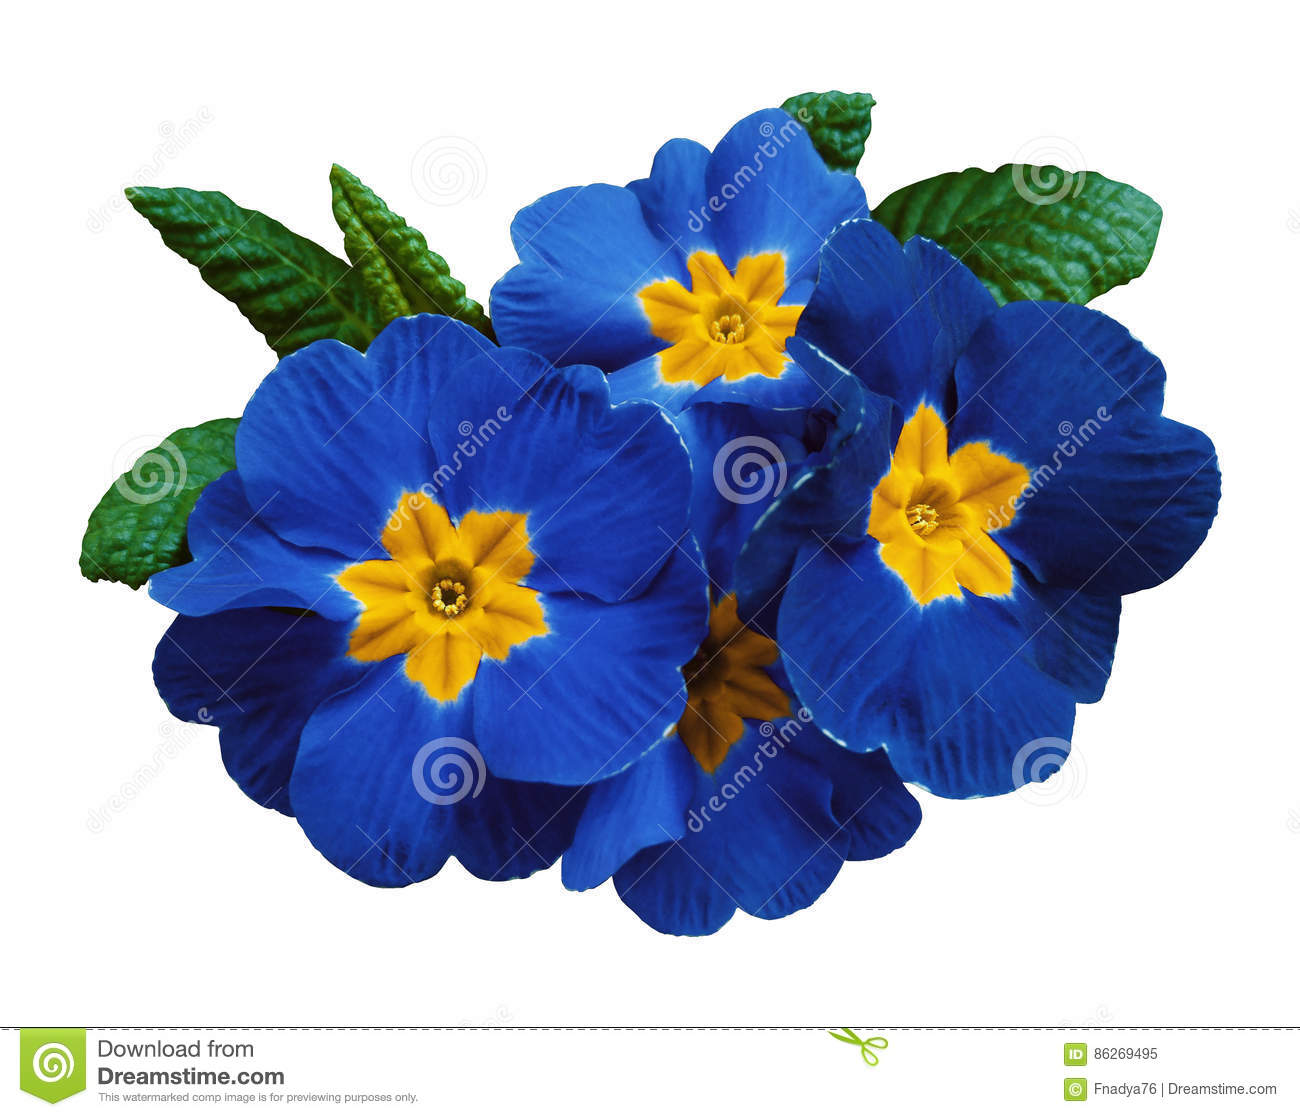 Blue Violets Flower White Isolated Background With